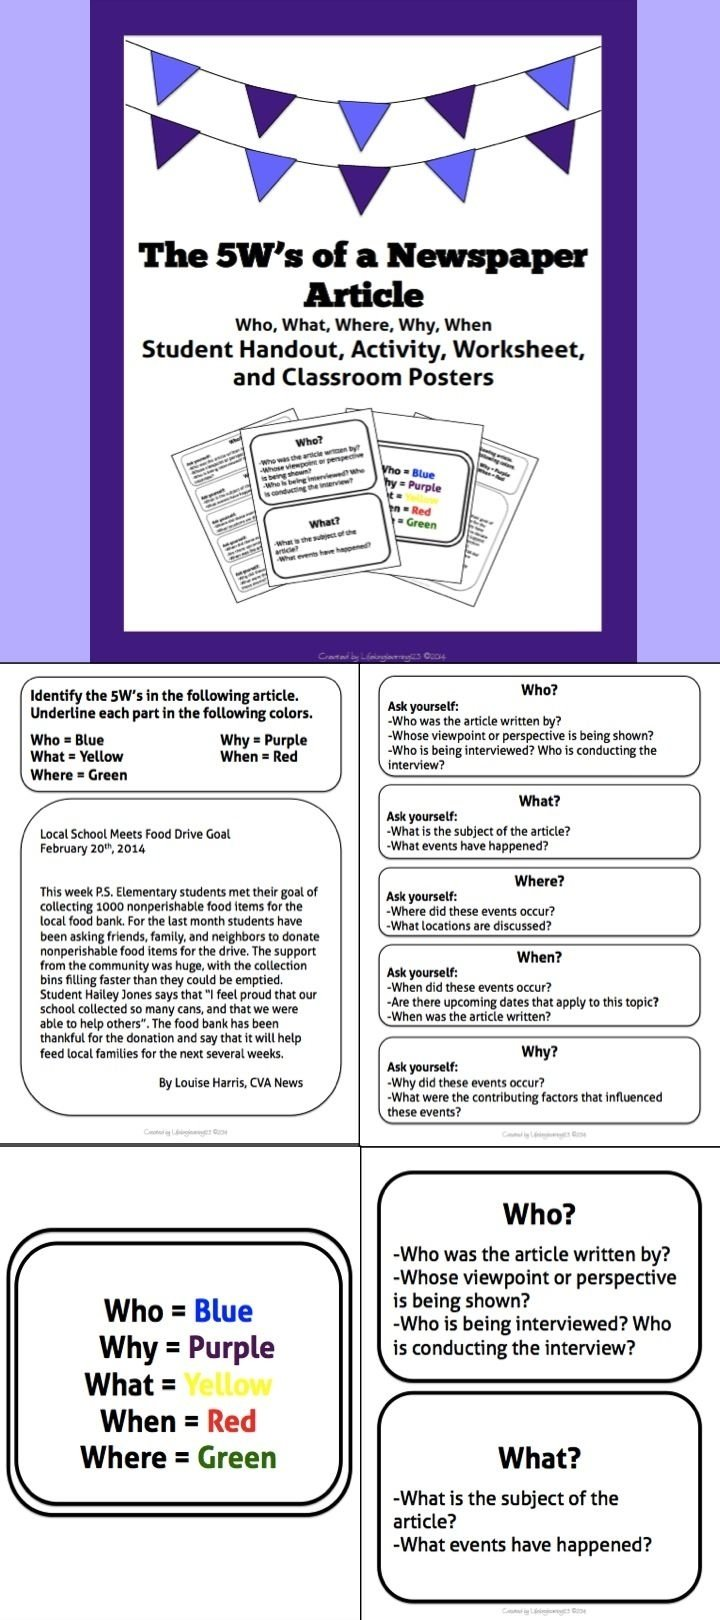 10 Attractive Middle School Newspaper Article Ideas 35 best newspapers images on pinterest school newspaper teaching 2020